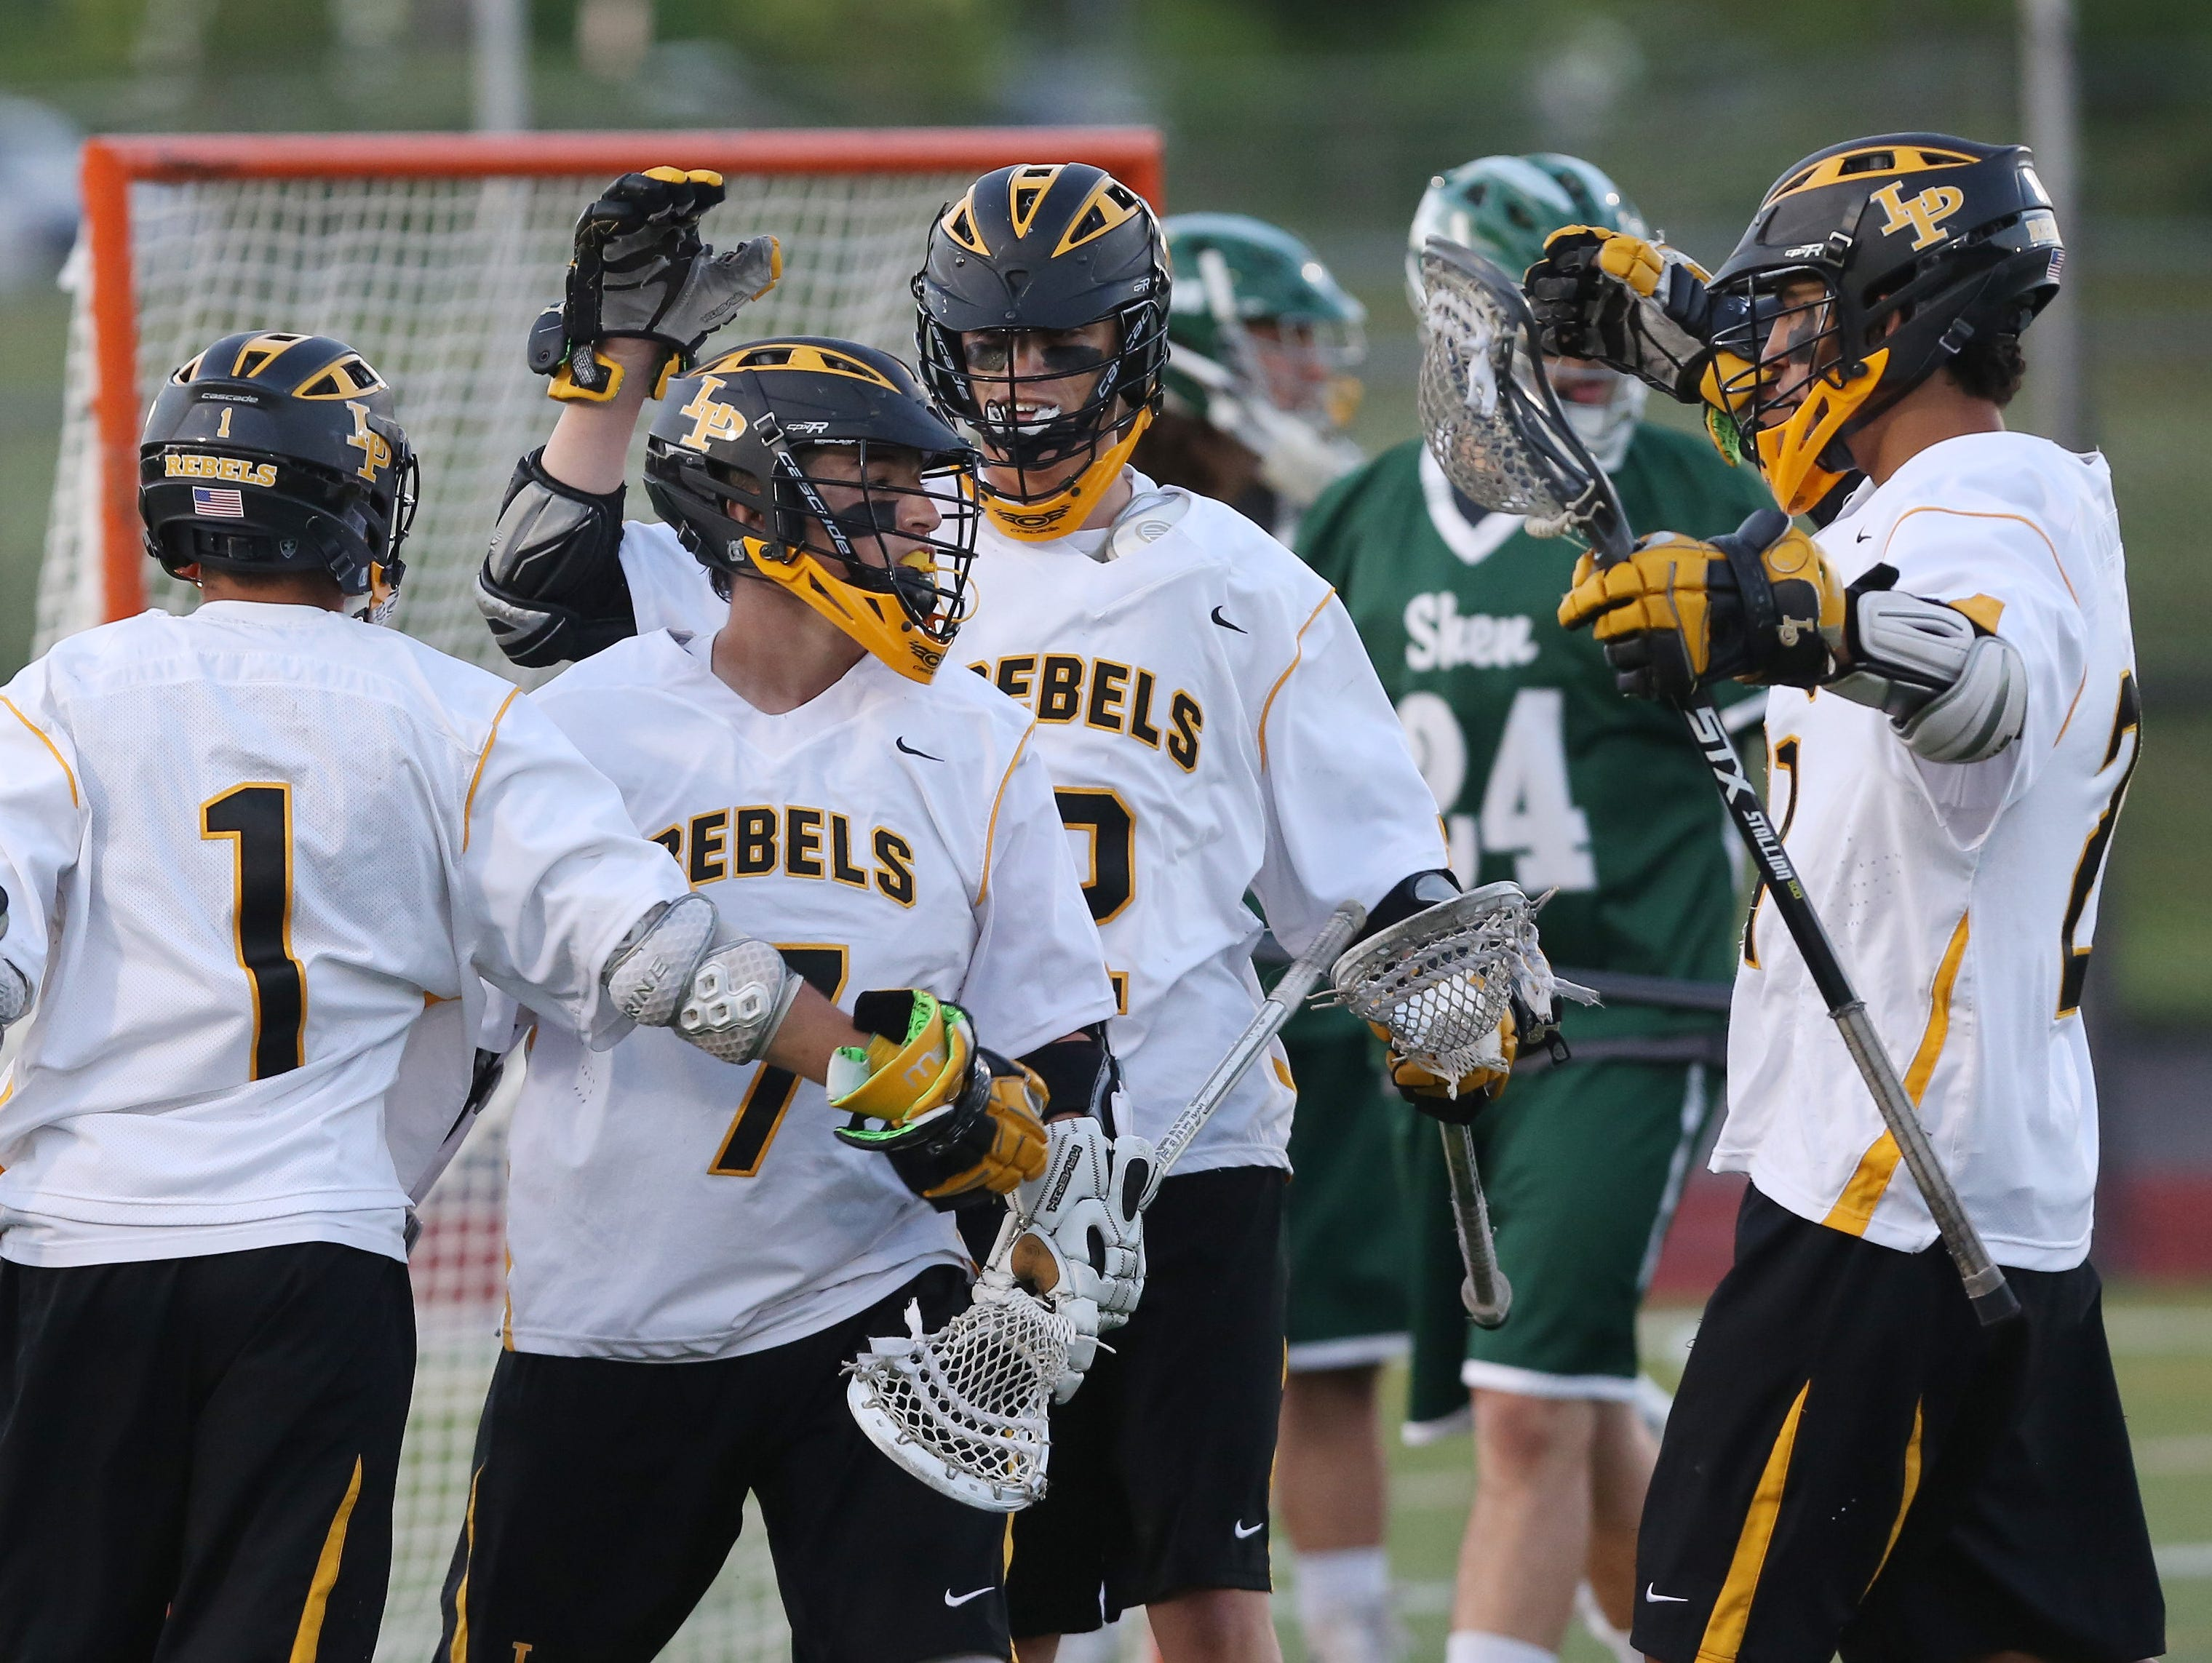 Lakeland/Panas players celebrate with Jo Jo Janavey (7) after his goal against Shenendehowa in the Class A state regional semifinal lacrosse game at Yorktown High School June 1, 2016. Lakeland/Panas won the game 8-7.